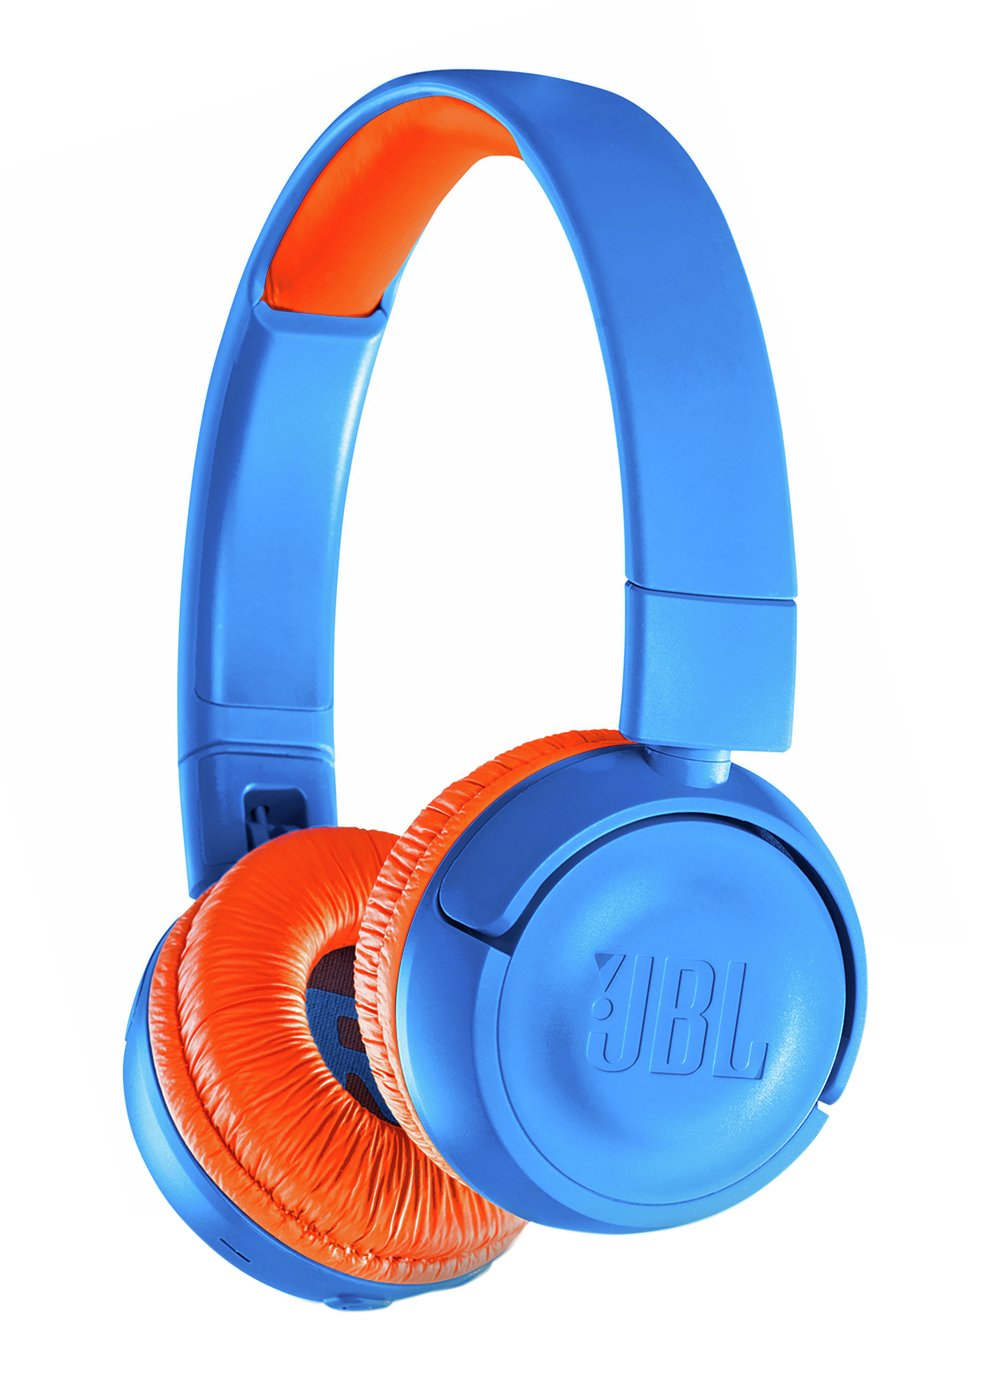 JBL JR300BT Kids Wireless On-Ear Headphones - Blue / Orange